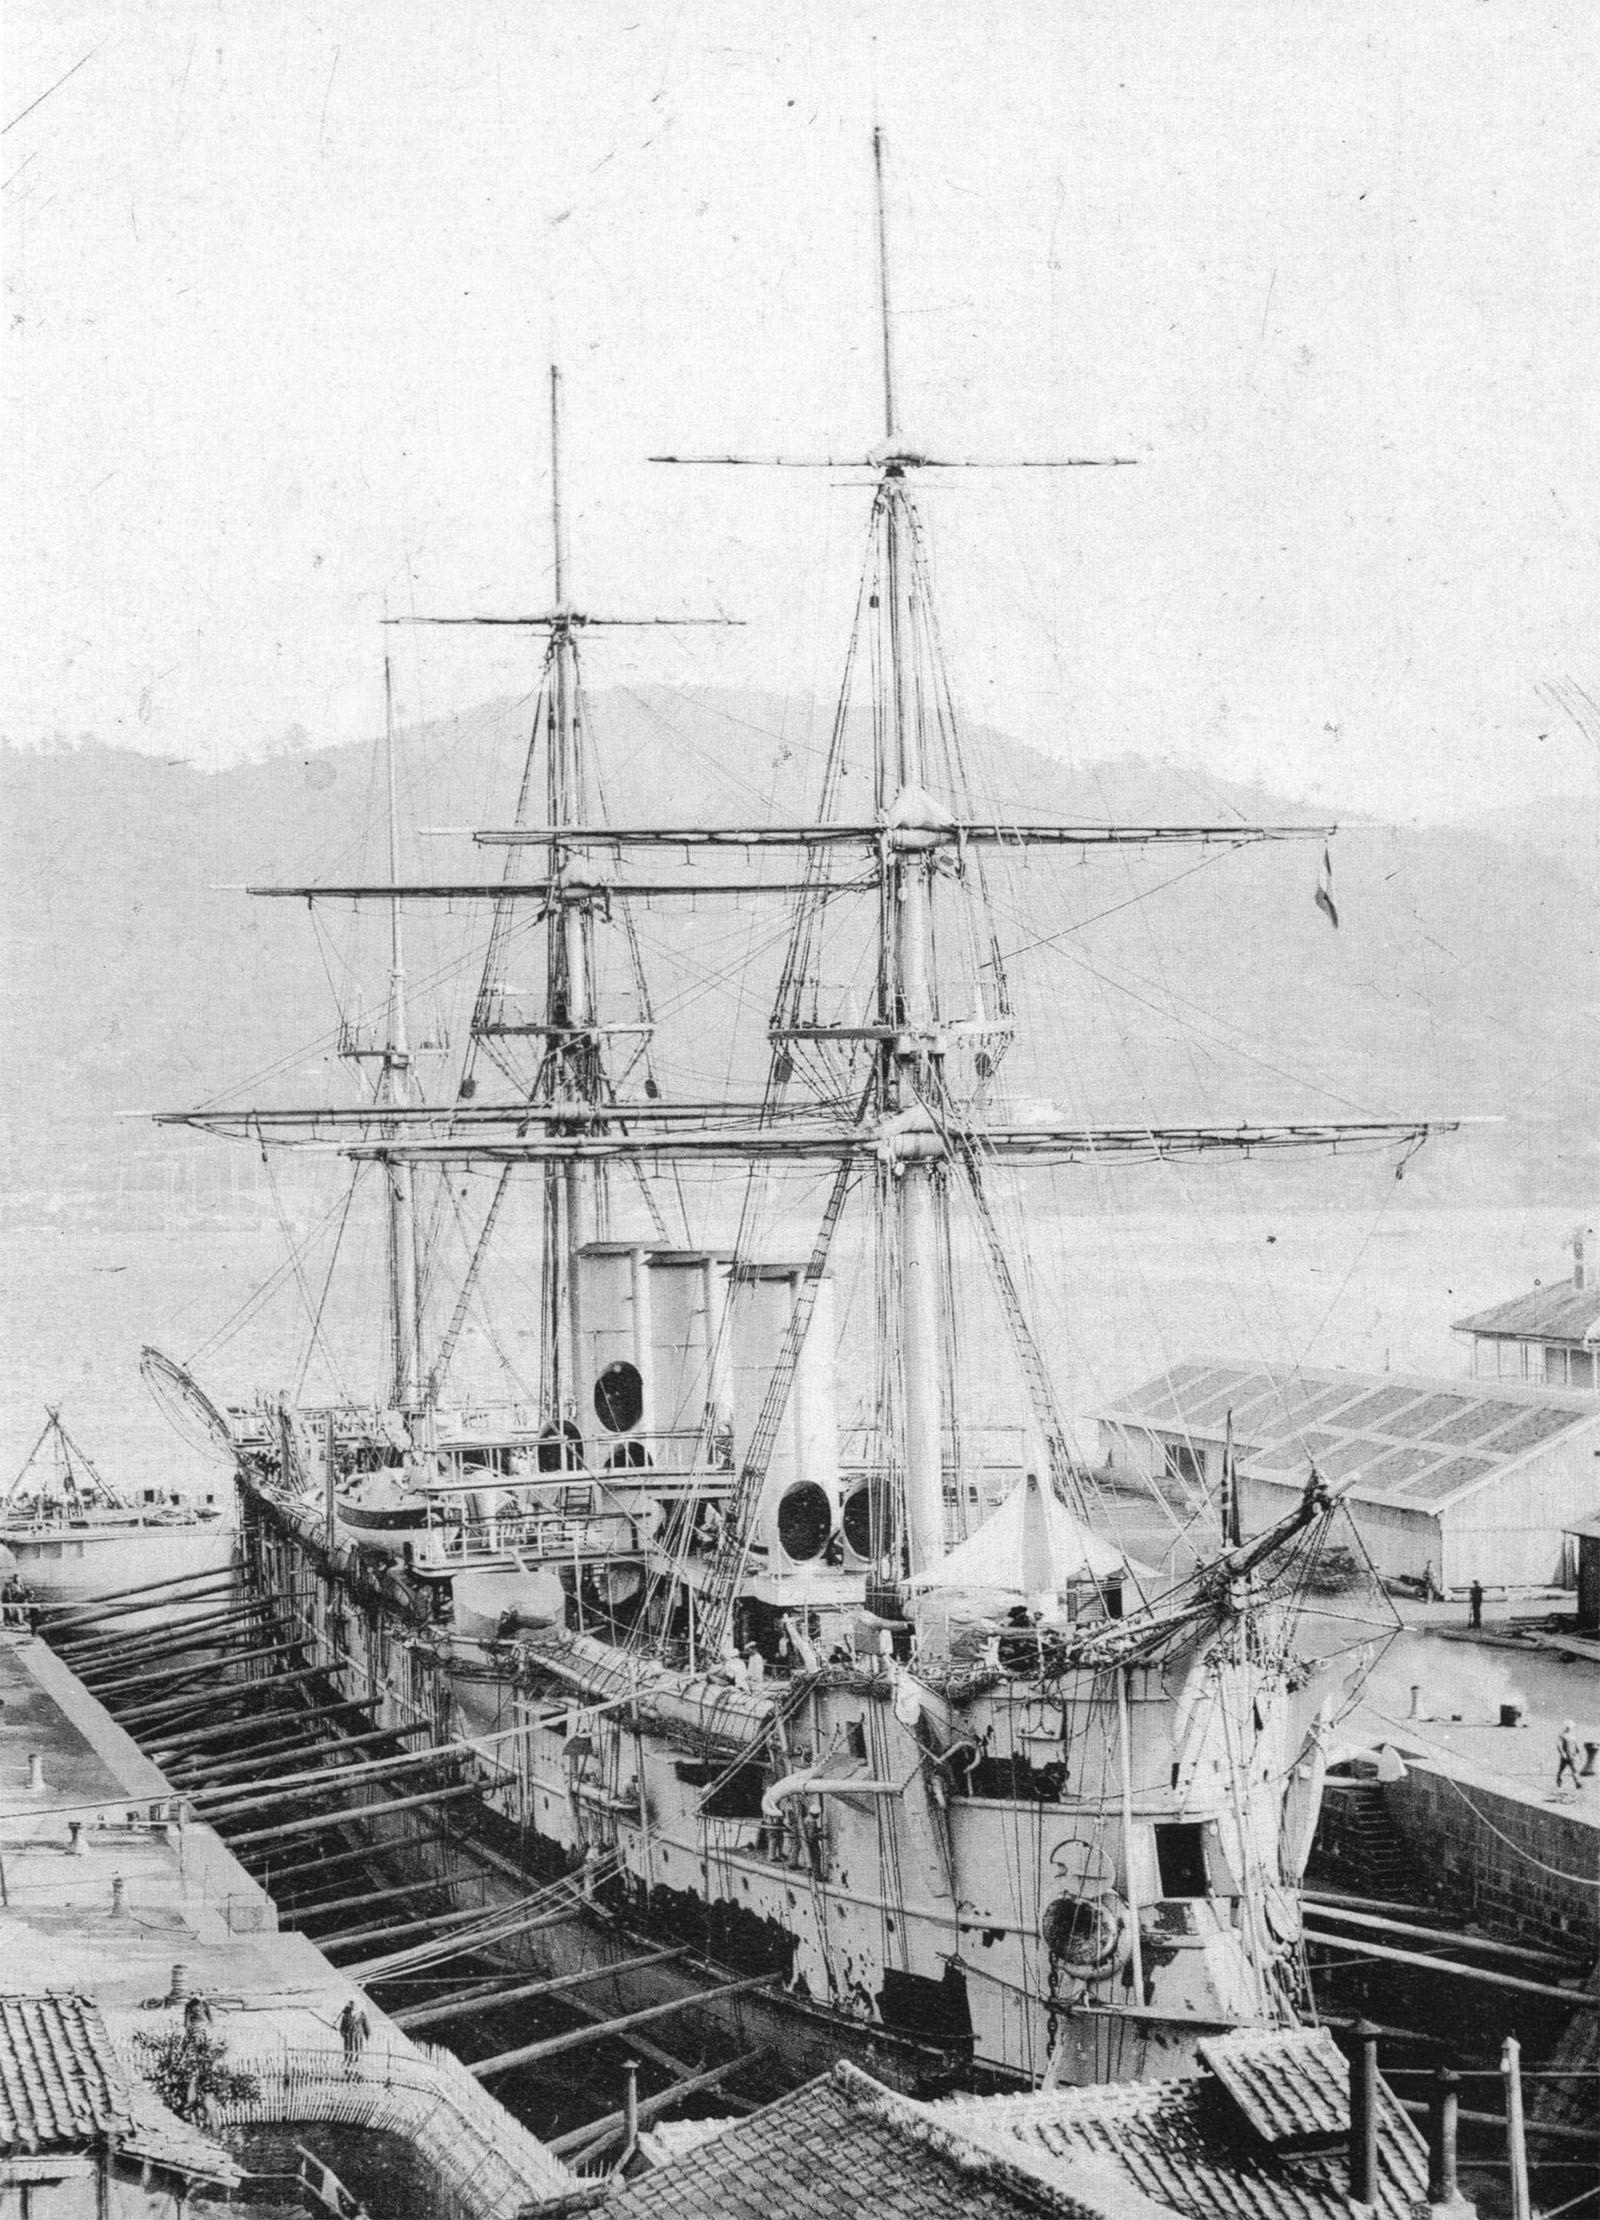 Click image for larger version.  Name:1. 1 1 7 2 2 1 Baltic fleet 5 protected cruiser Pamiat Azova 1891 1.jpg Views:1 Size:575.4 KB ID:3648915